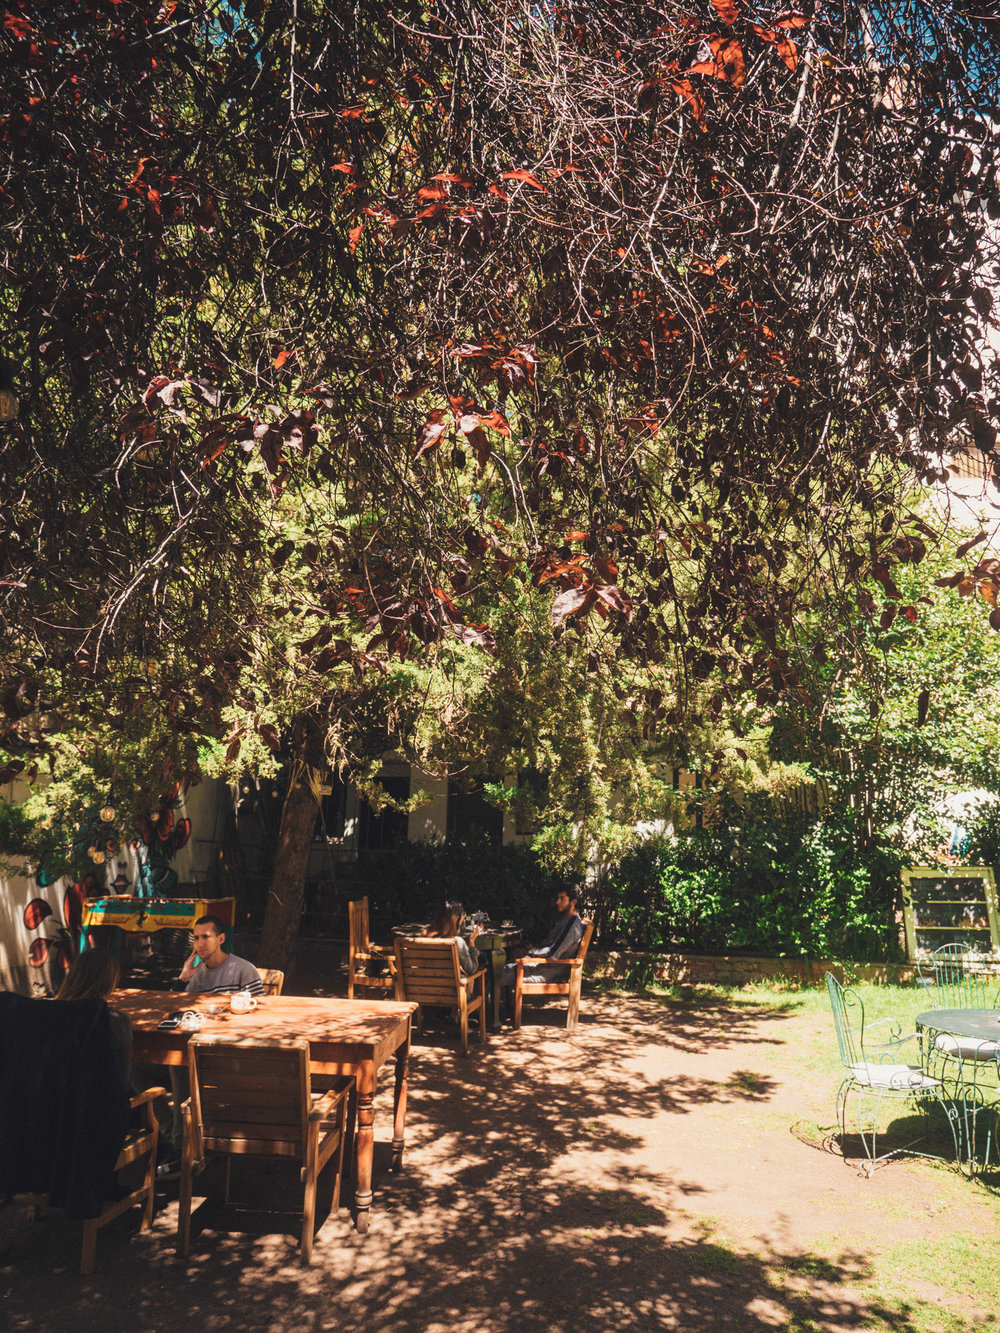 In the garden of Typica Café, a great spot to work and sip cortado's